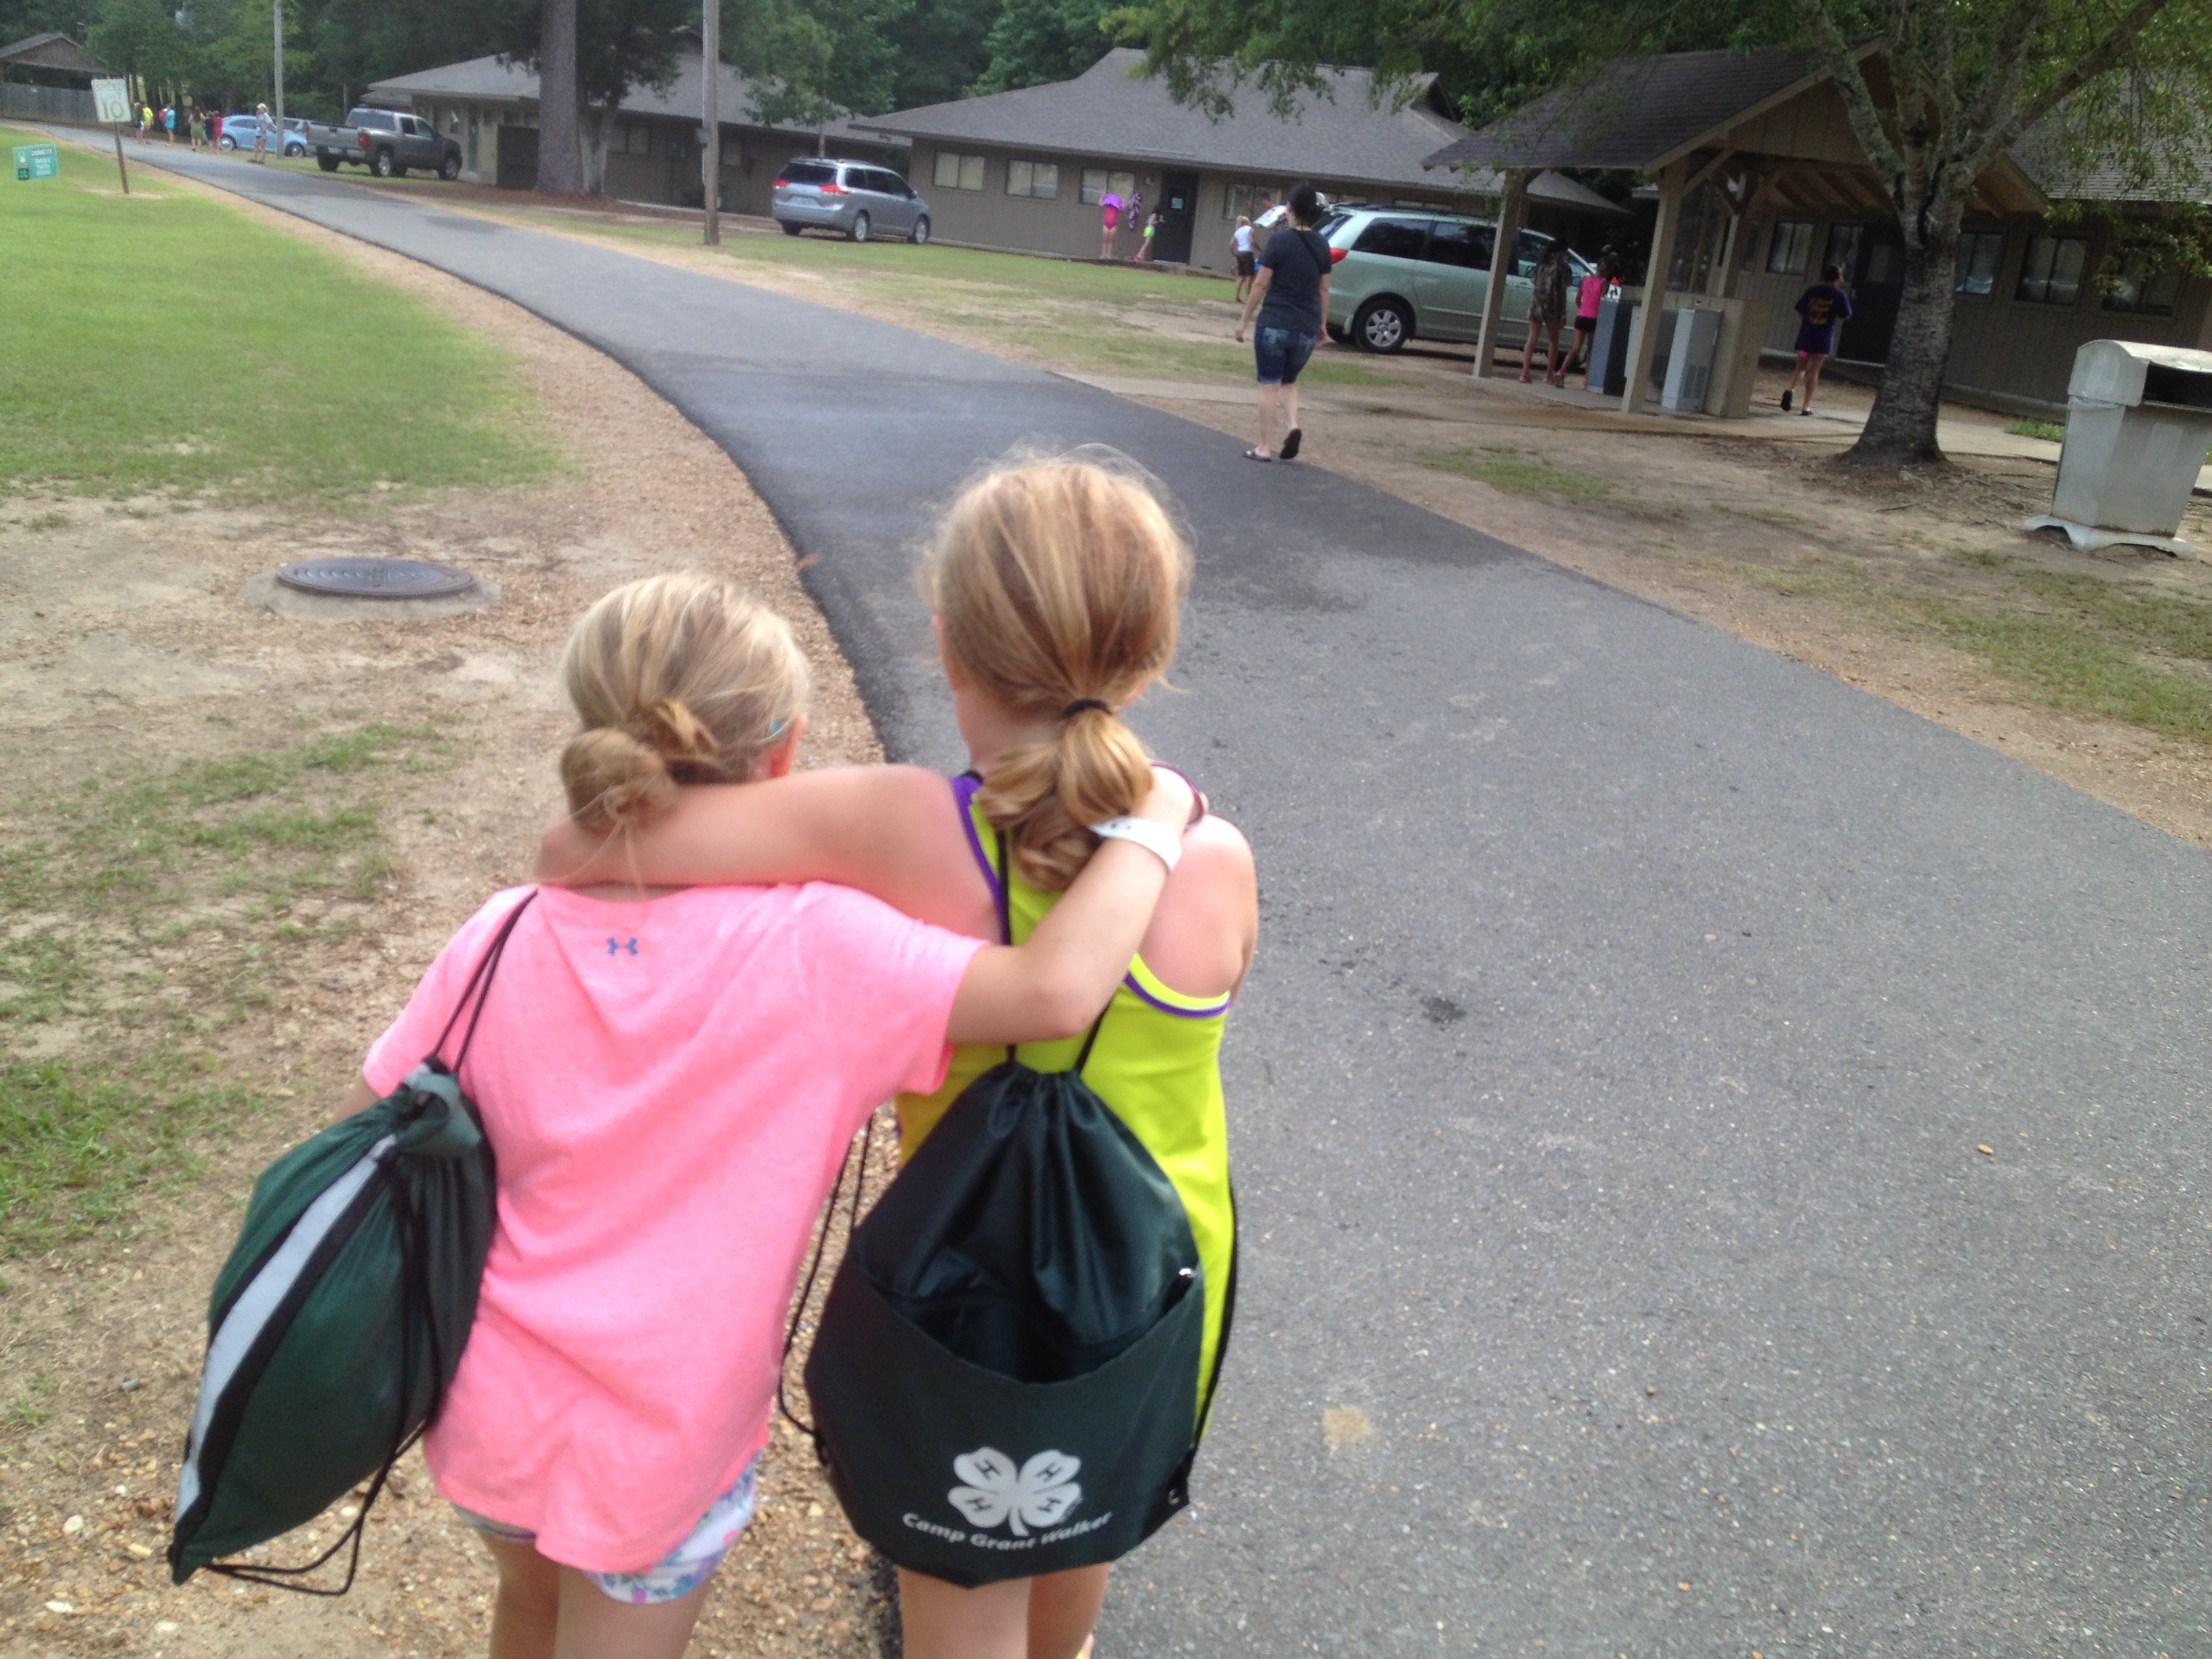 Girls with backpacks walking on the road together.